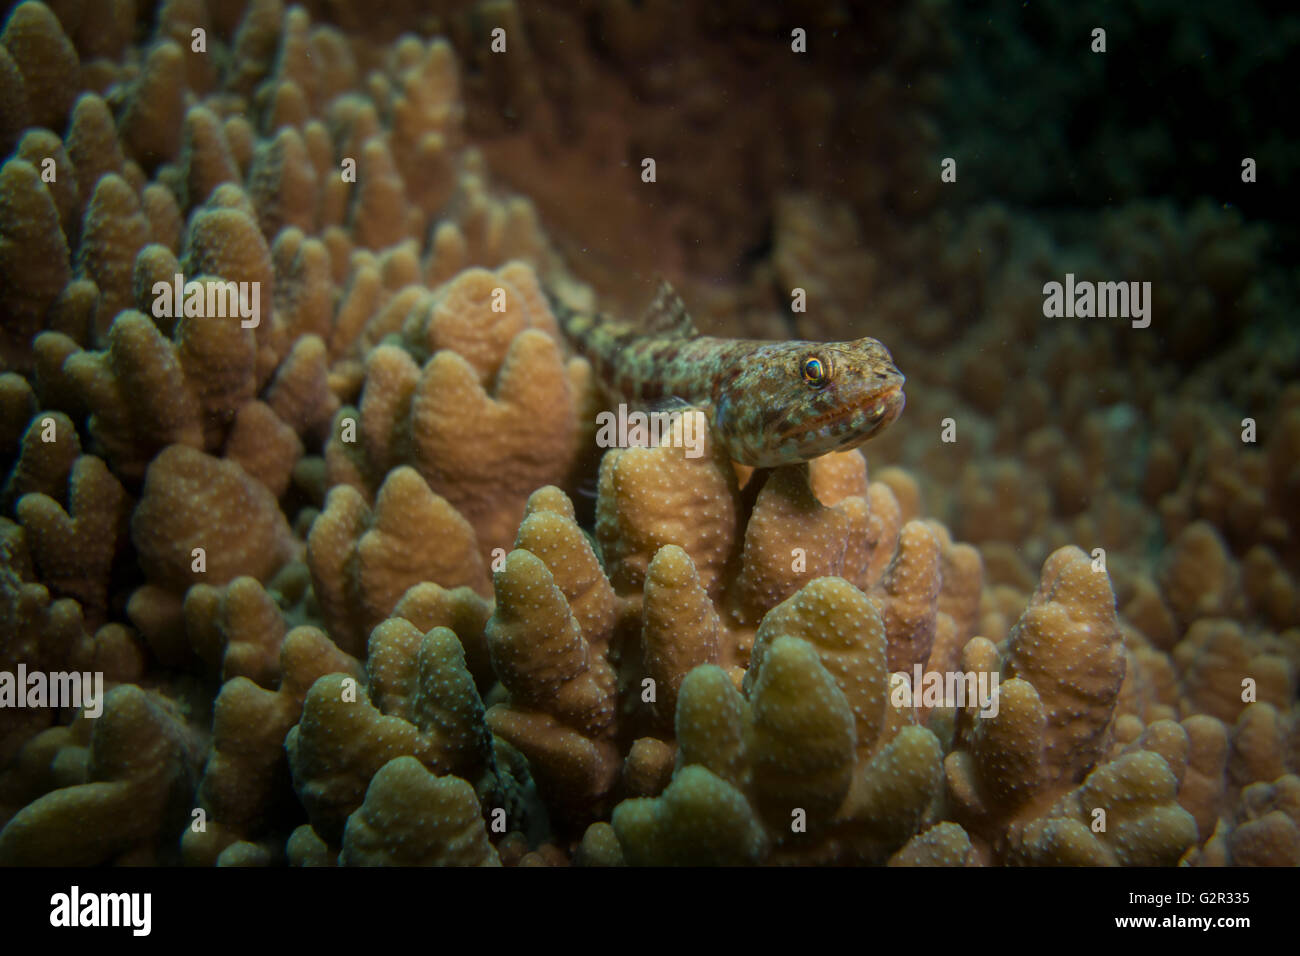 Variegated Lizardfish, Synodus variegatus, on a hard coral, South China Sea, Brunei, Coral Triangle. - Stock Image